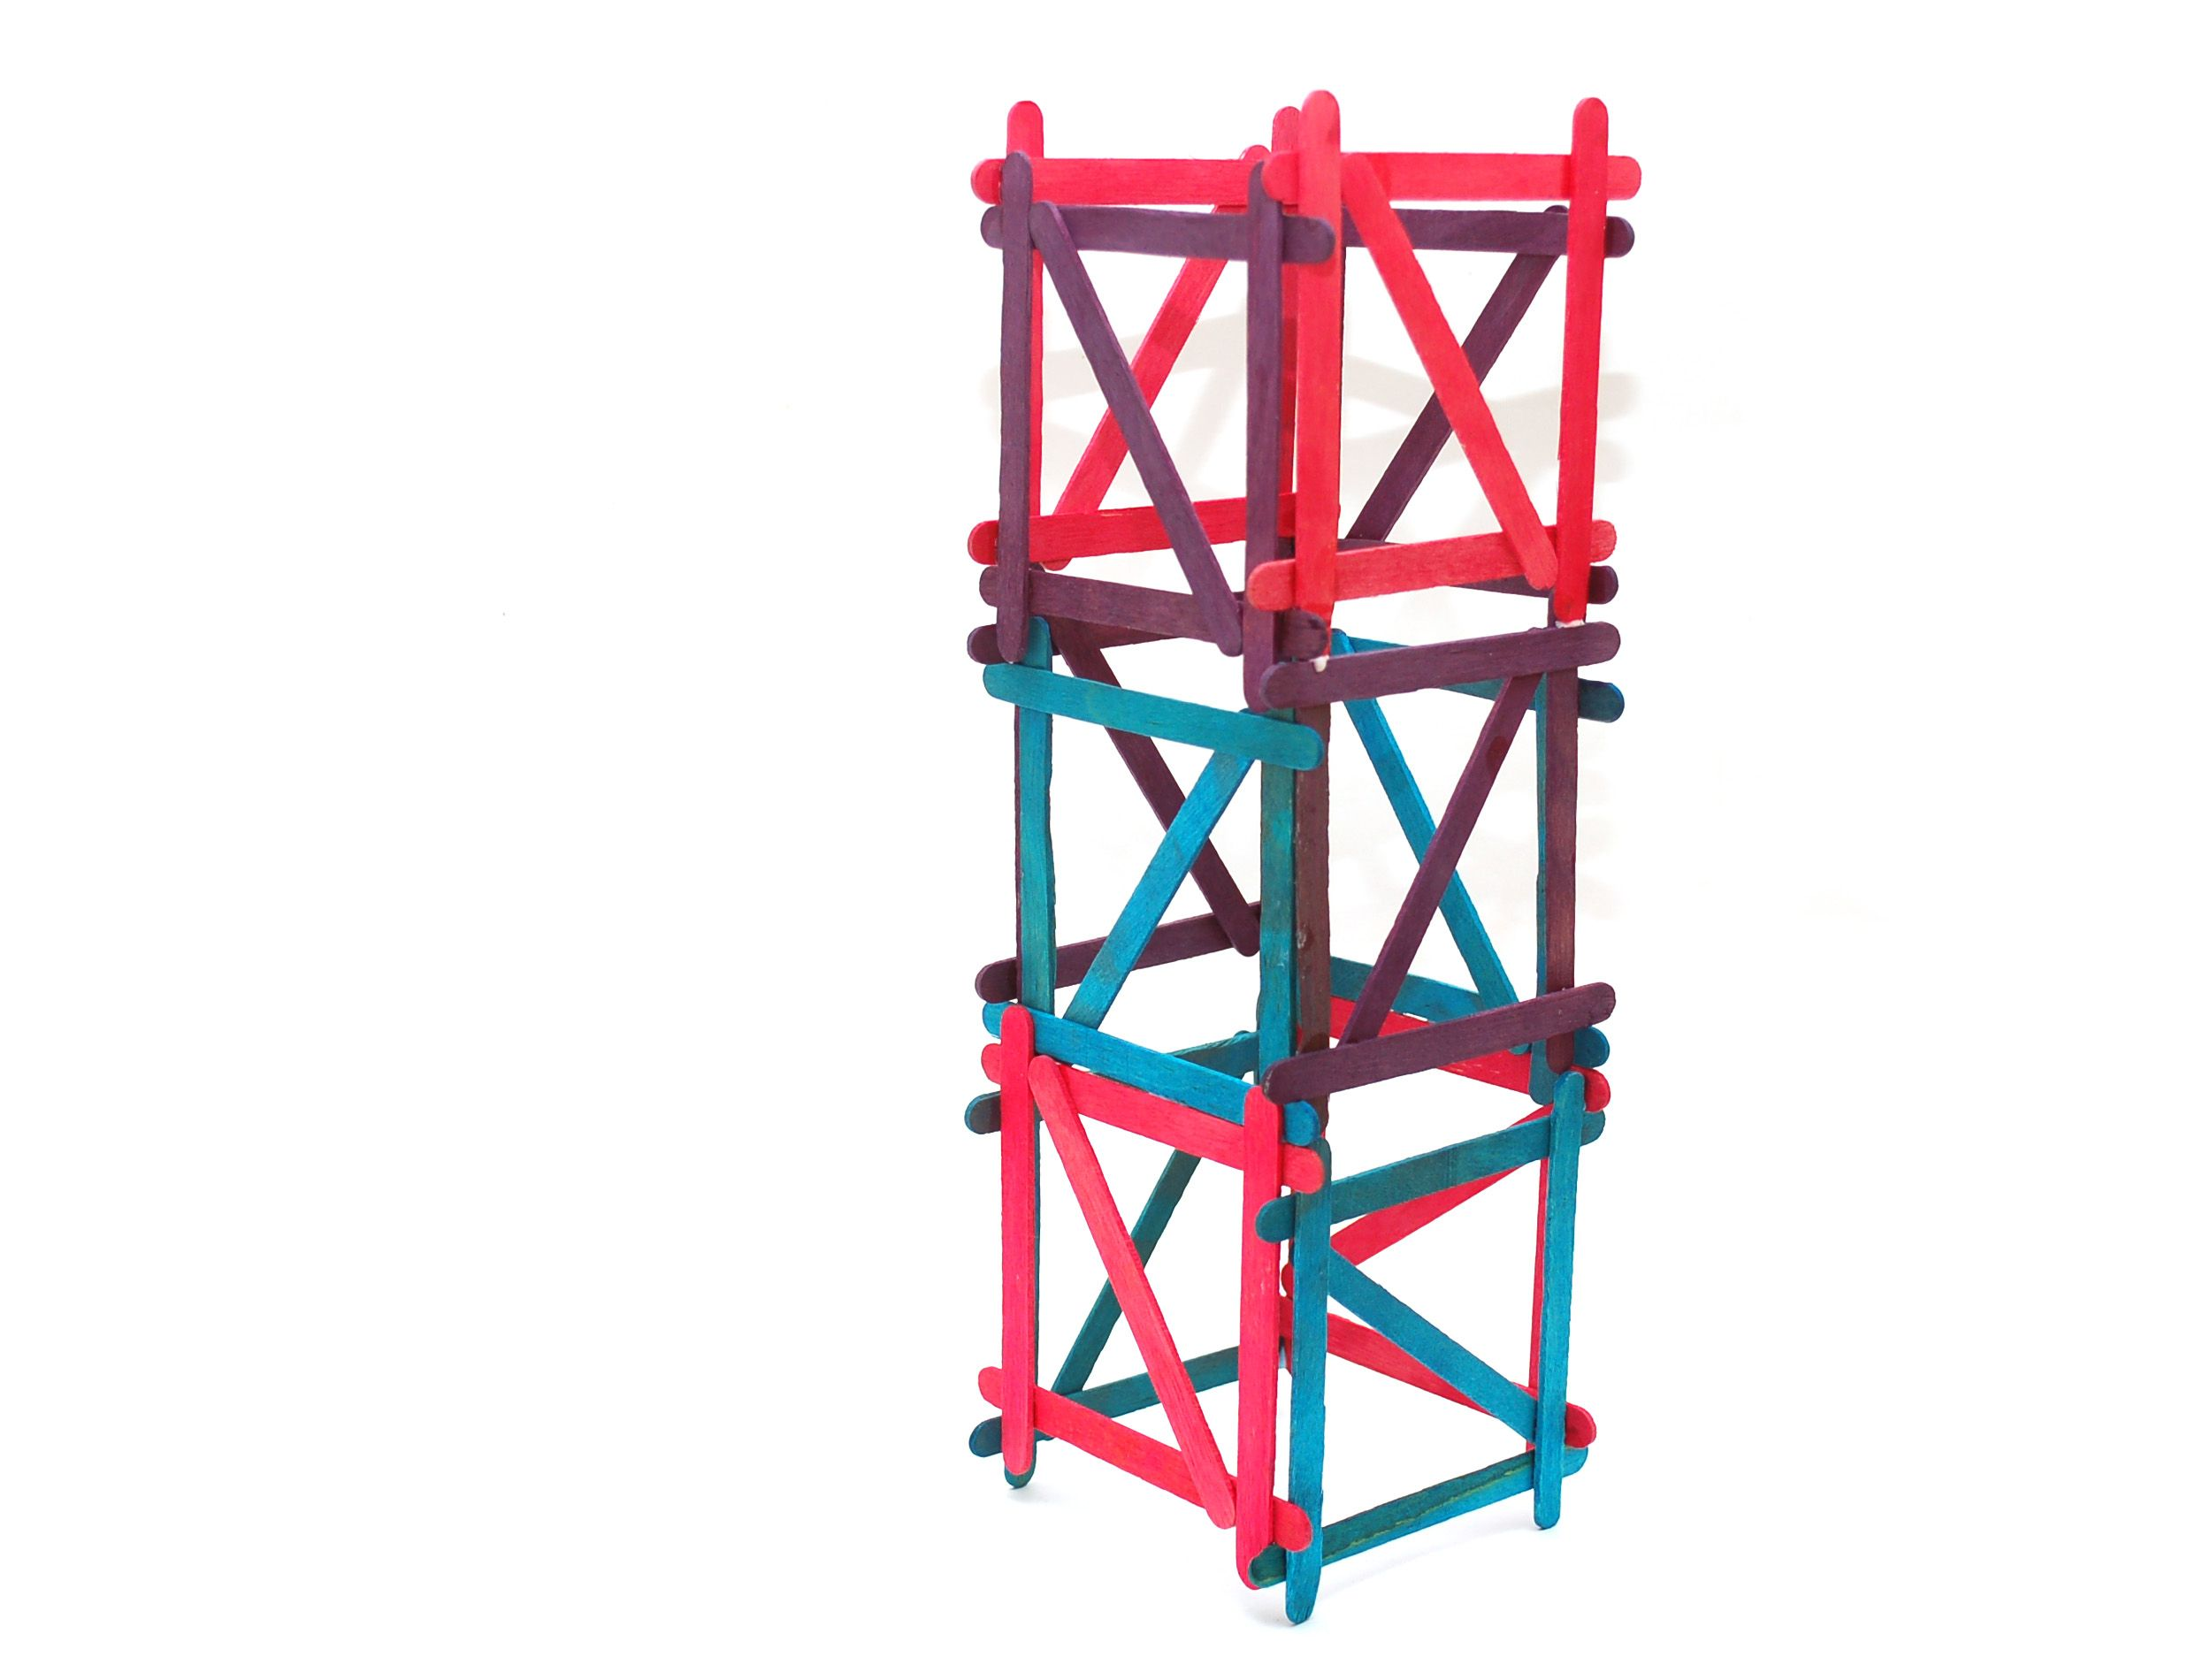 Build a popsicle stick tower tower popsicle stick for Ideas for building with popsicle sticks